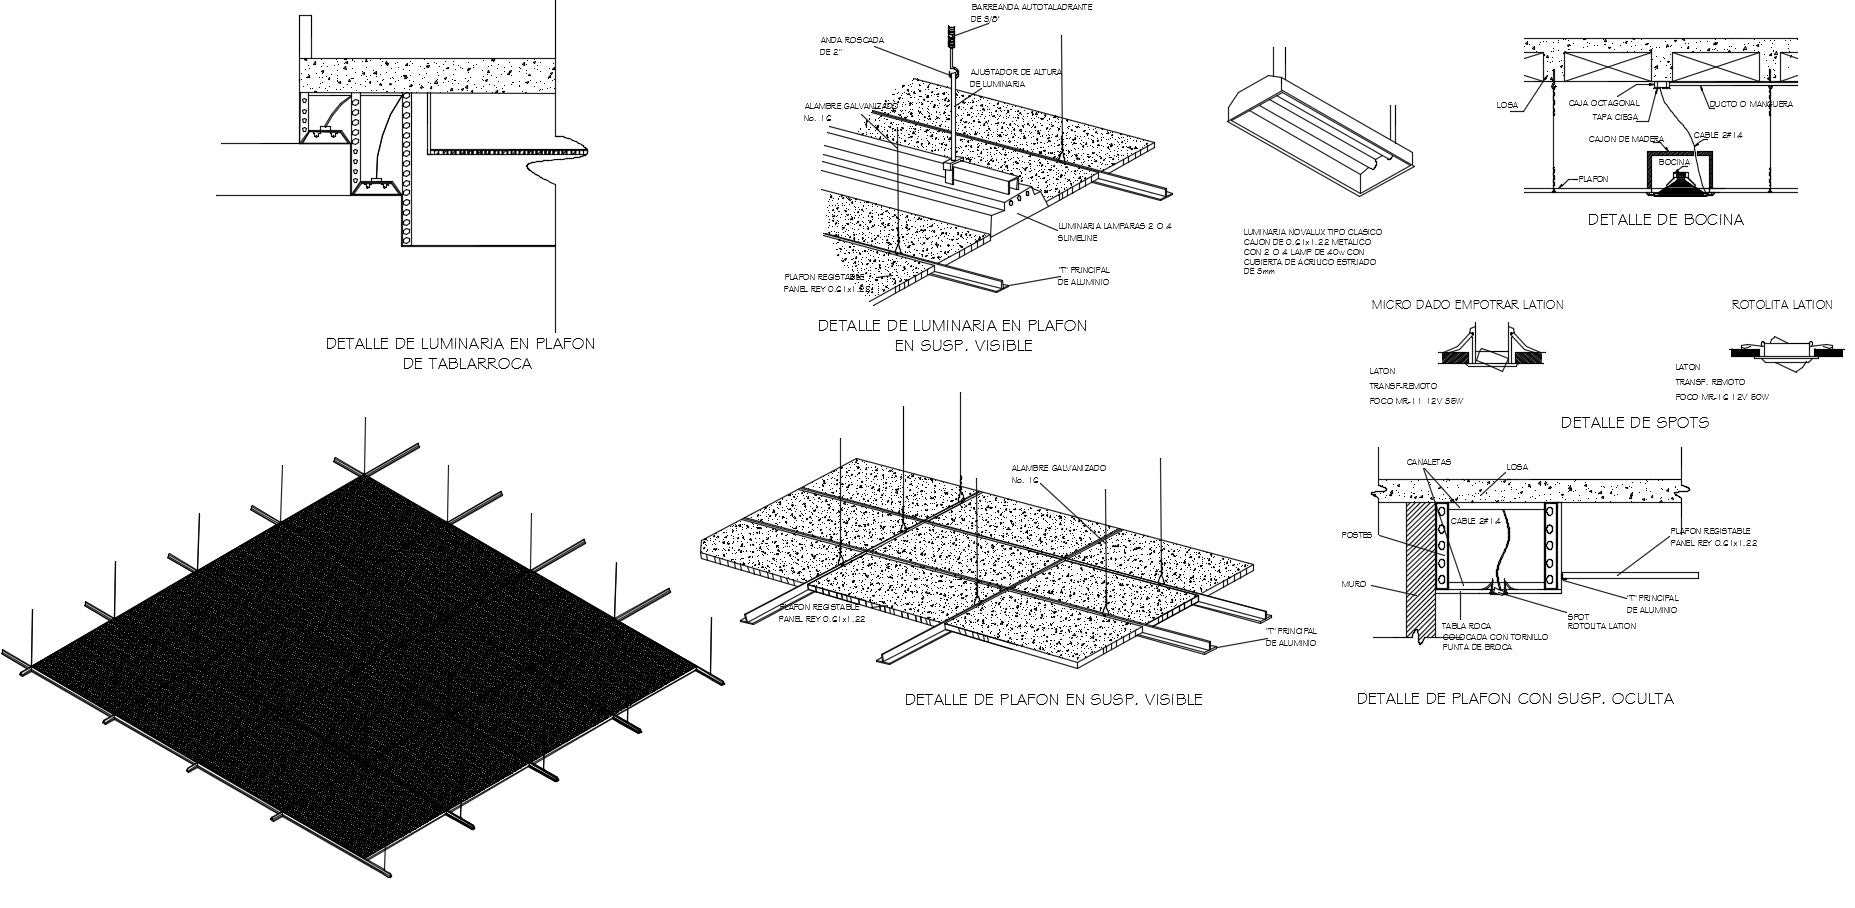 Ceiling detail sections drawing dwg files include plan, elevations and sectional detail of suspended ceilings in autocad dwg files